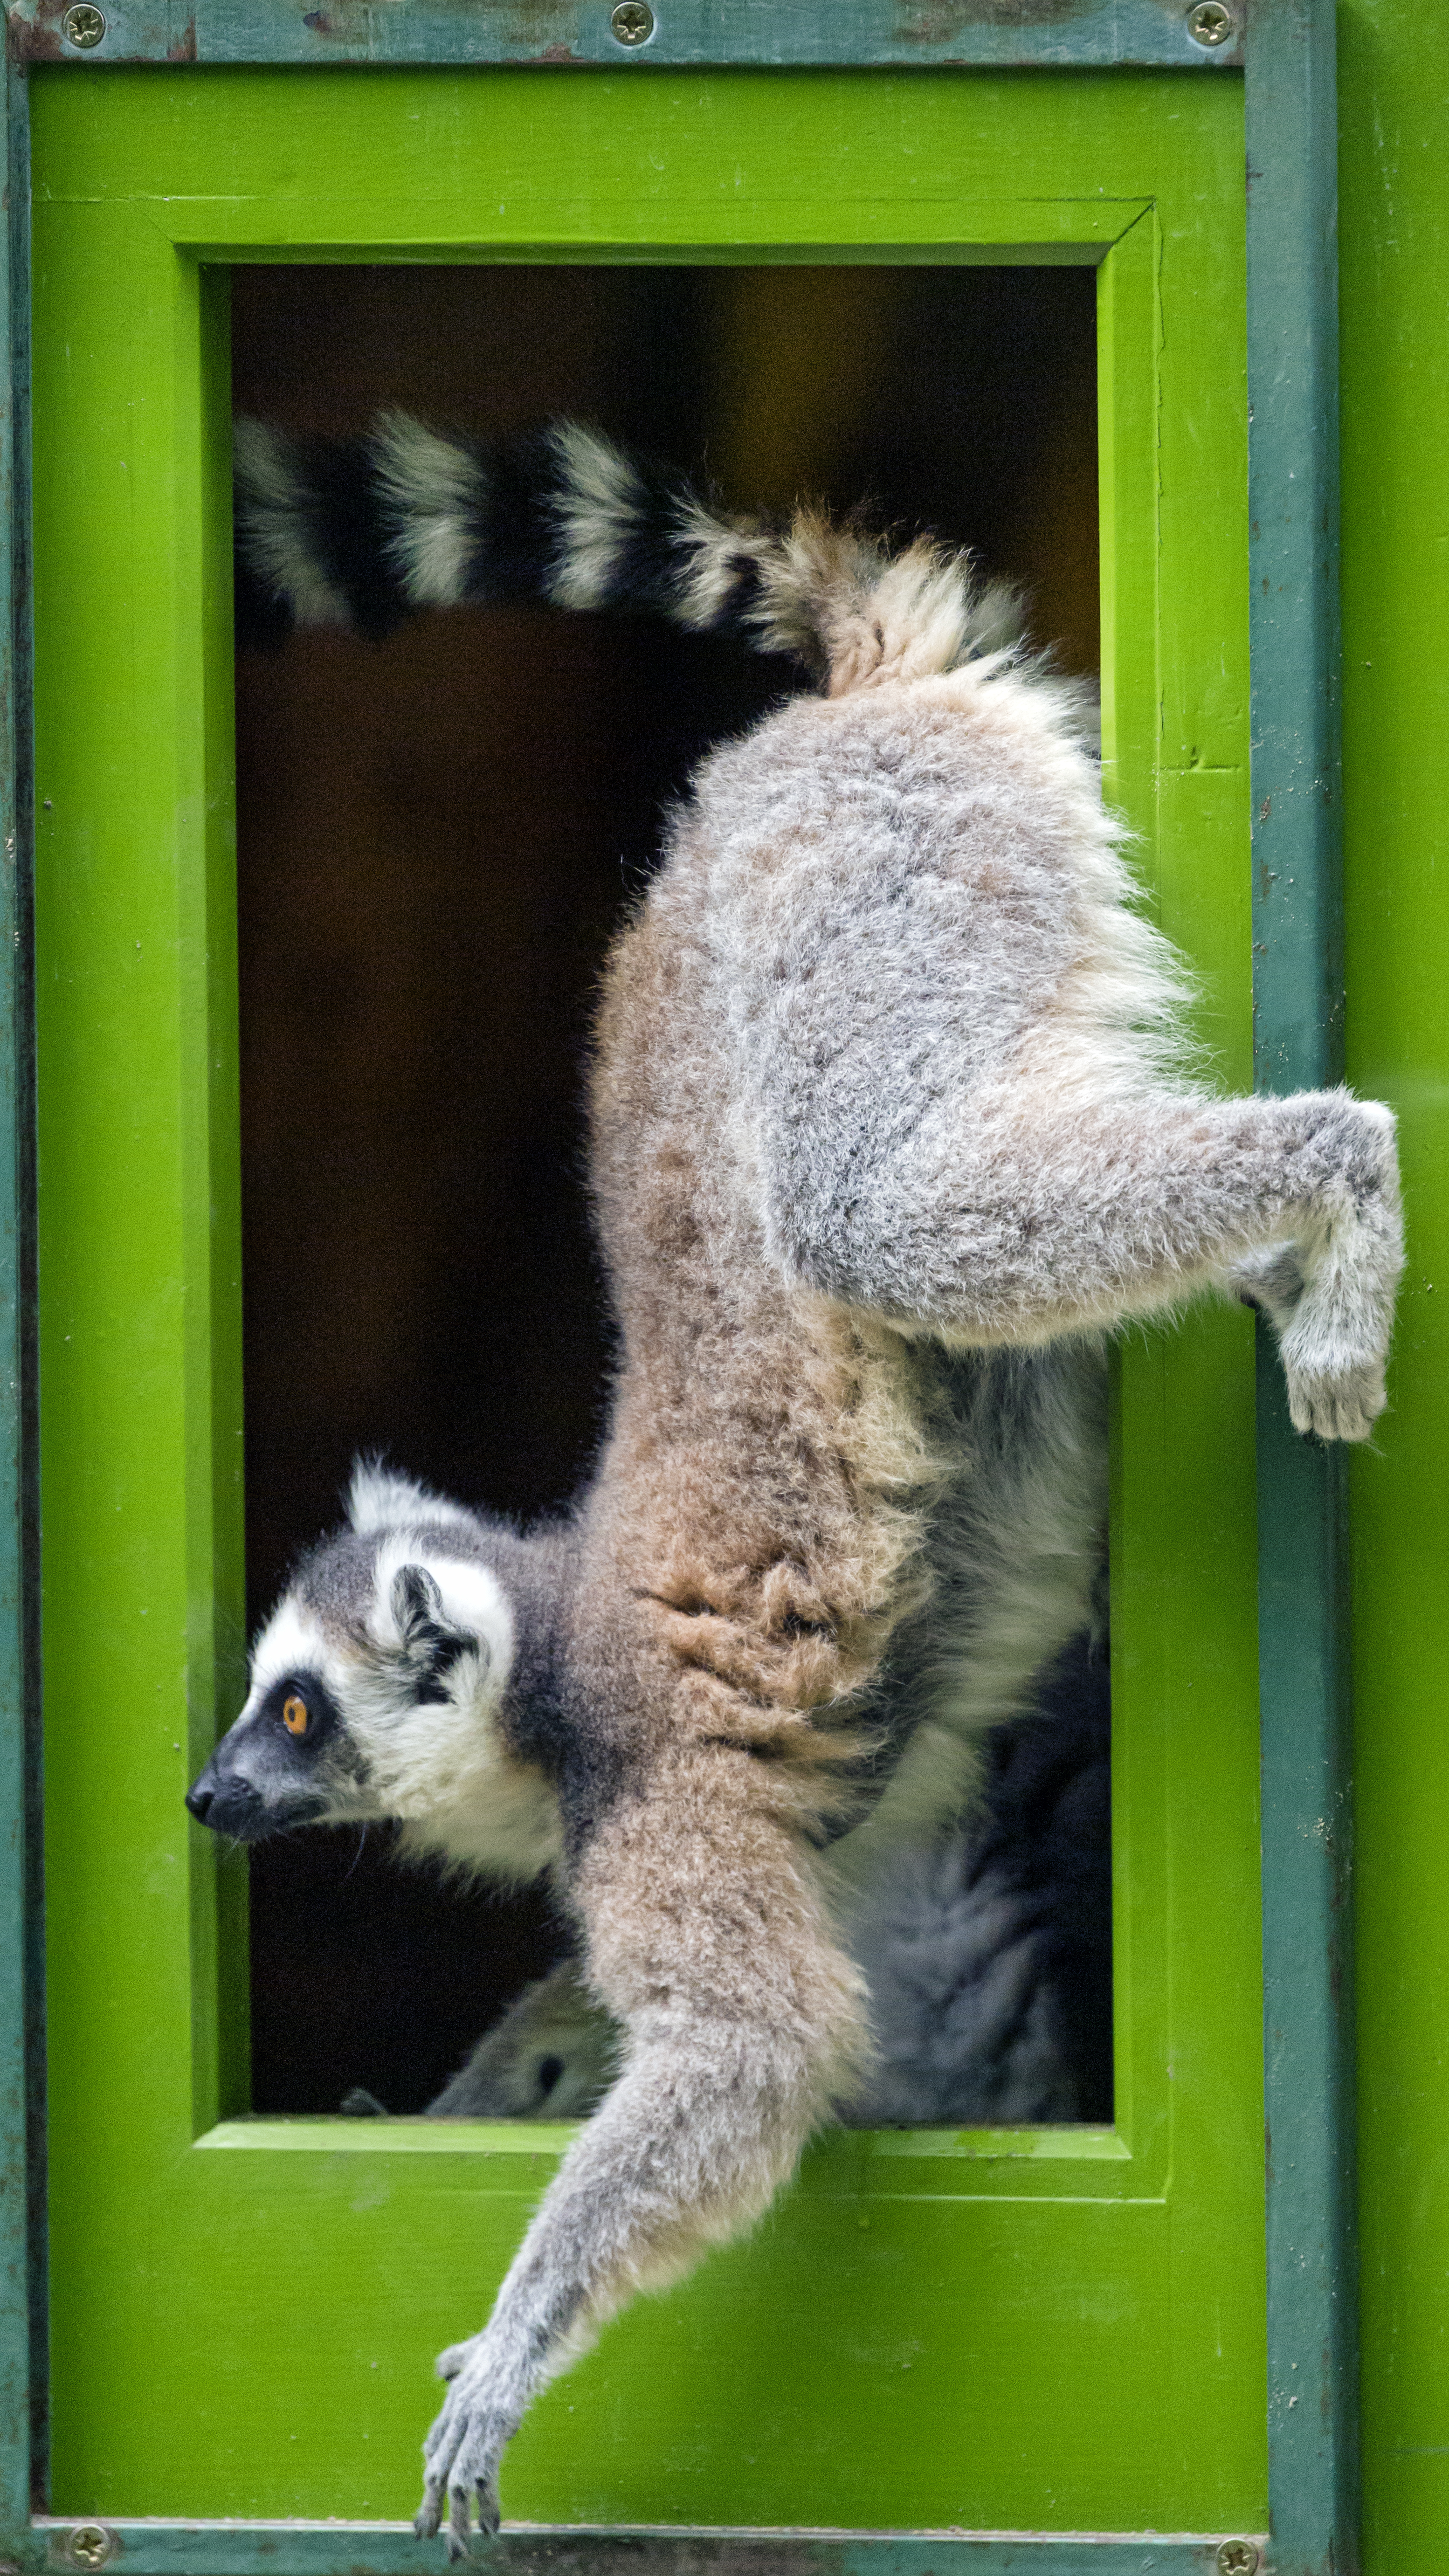 60262 download wallpaper Animals, Lemur, Door, Funny, Animal screensavers and pictures for free